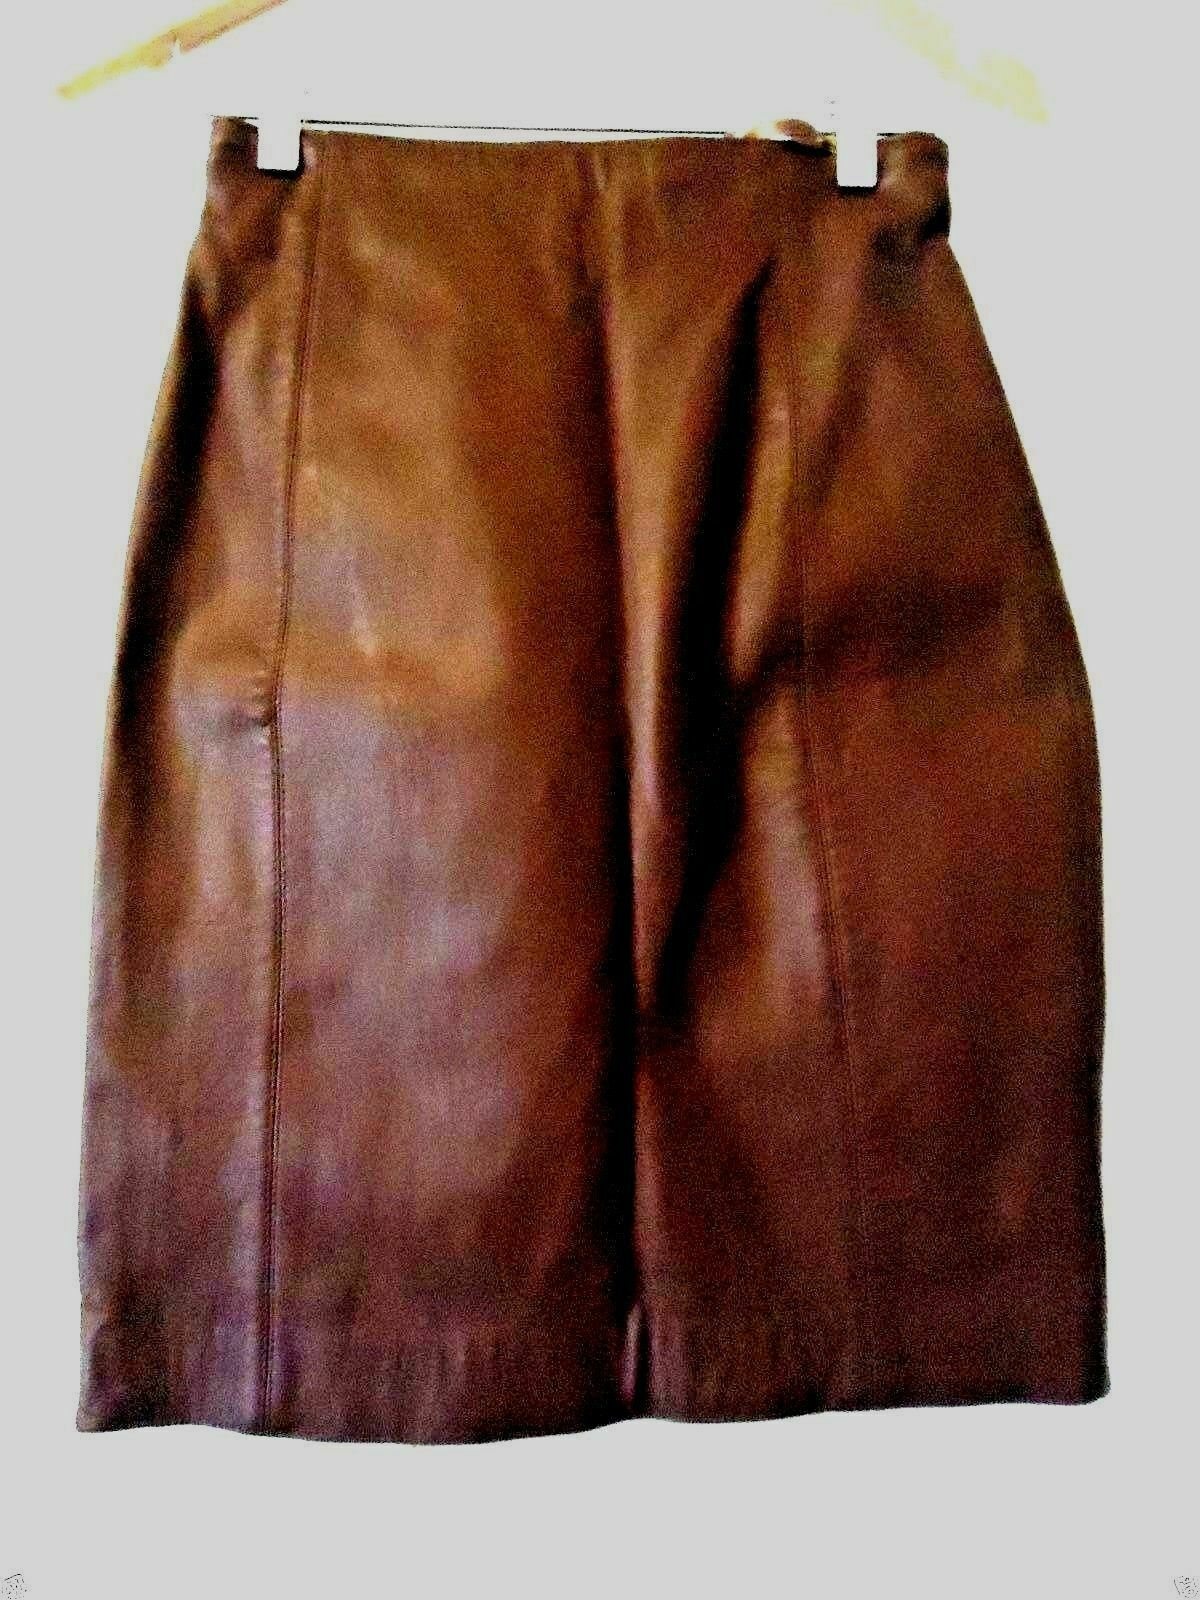 TANNERY WEST WOMEN'S GENUINE BROWN LEATHER LINED DRESS SKIRT SIZE 6